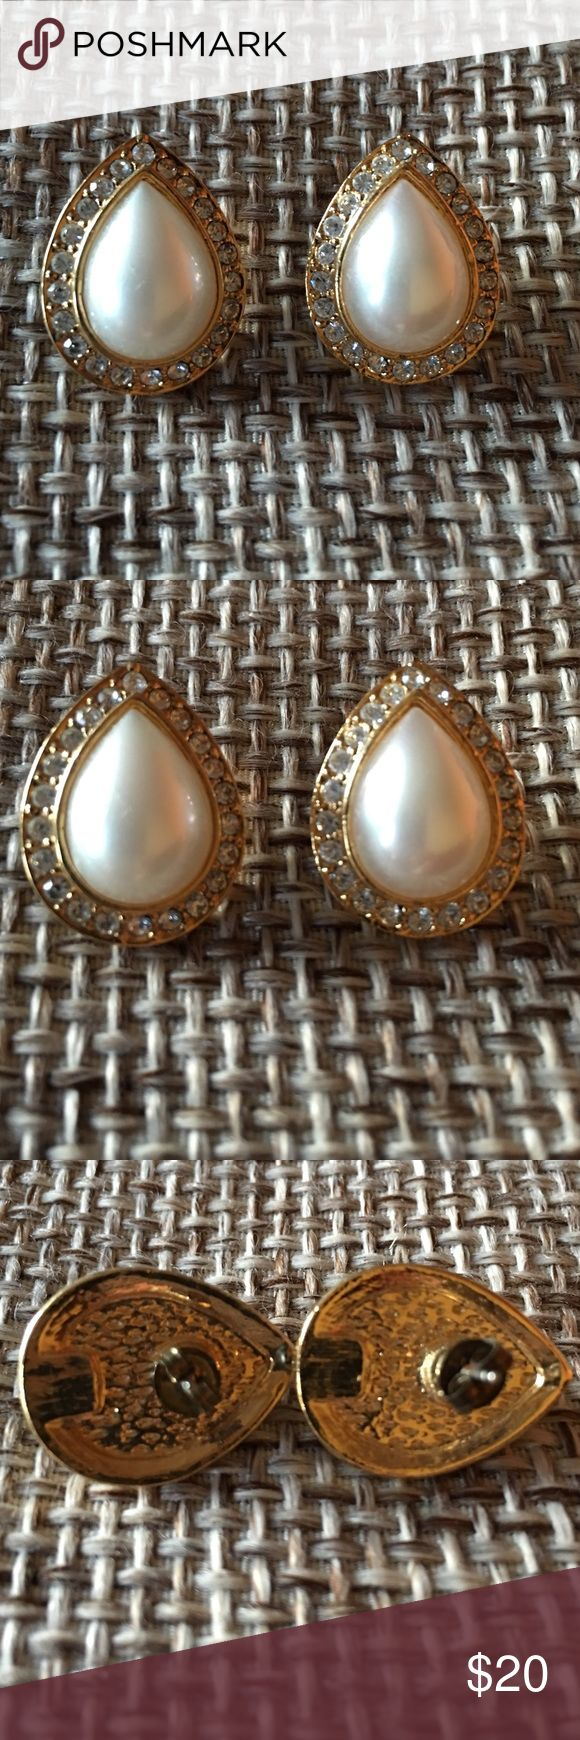 VINTAGE EARRINGS Beautiful set in mint condition. Jewelry Earrings